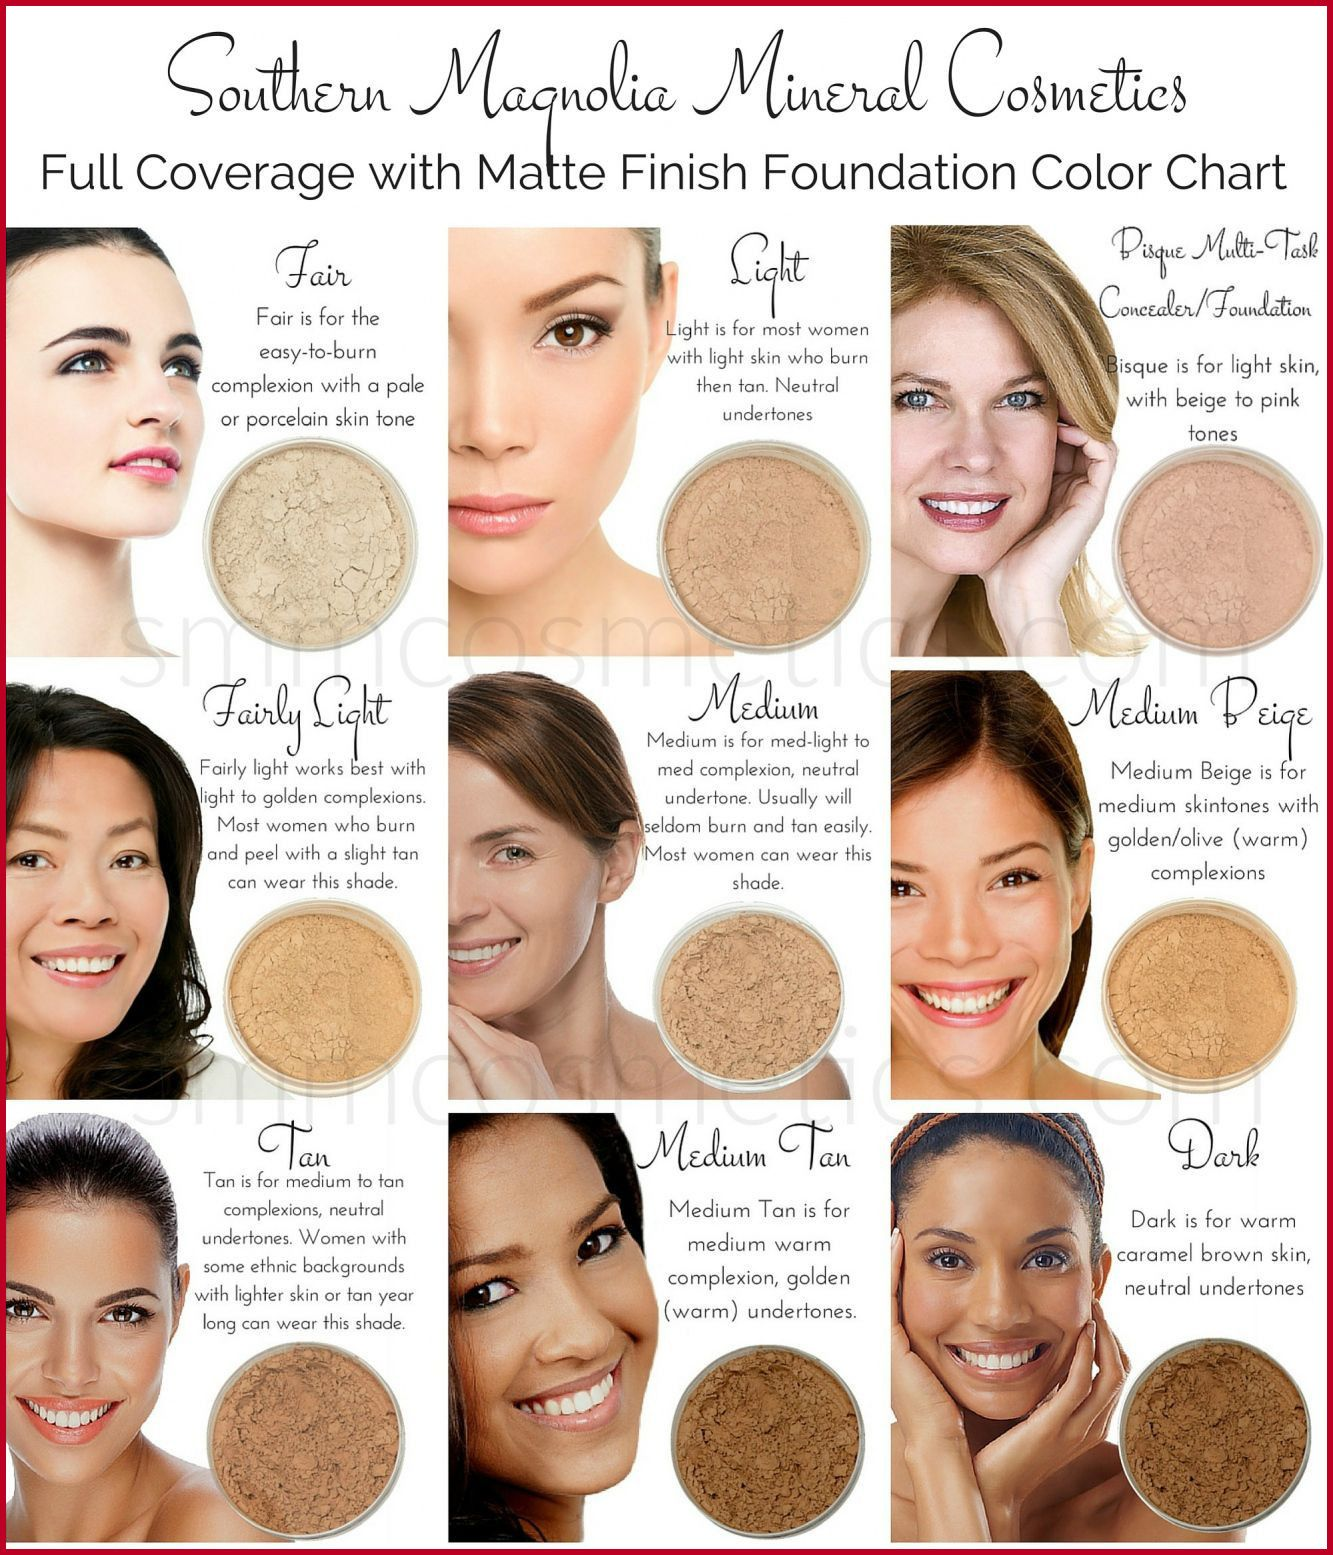 Cool Skin Tone Hair Color Chart Cool Skin Tone Hair Color Chart 666991 Hair Colors For Skin Tones Hair Colors For Skin Tone Pink Skin Tone Skin Tone Hair Color